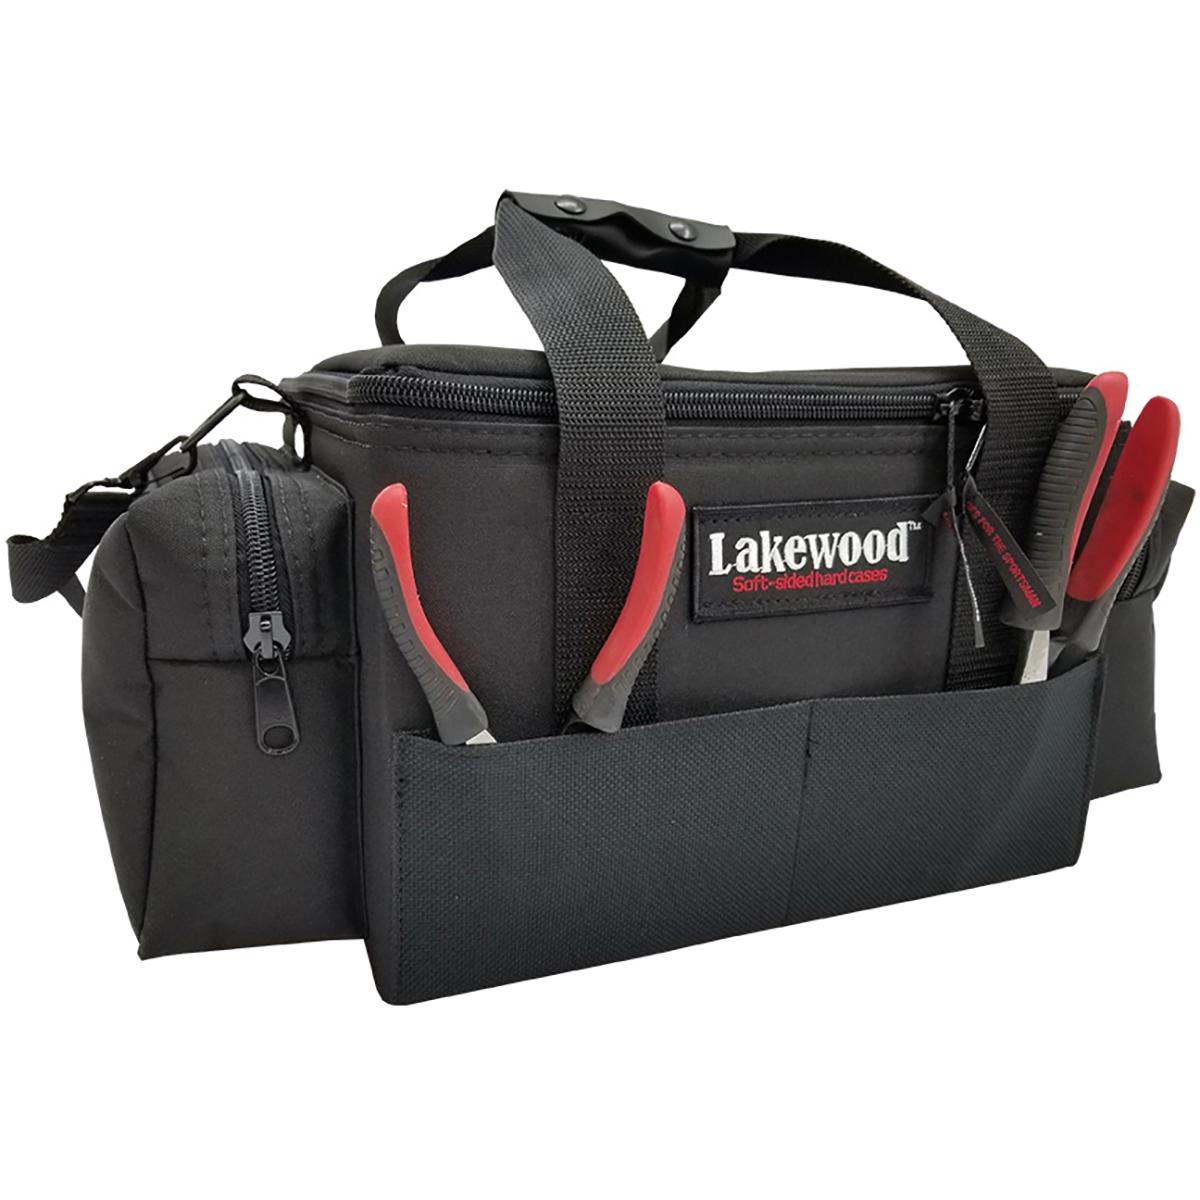 Lakewood Lure Caddy Soft-Sided Hard Tackle Box